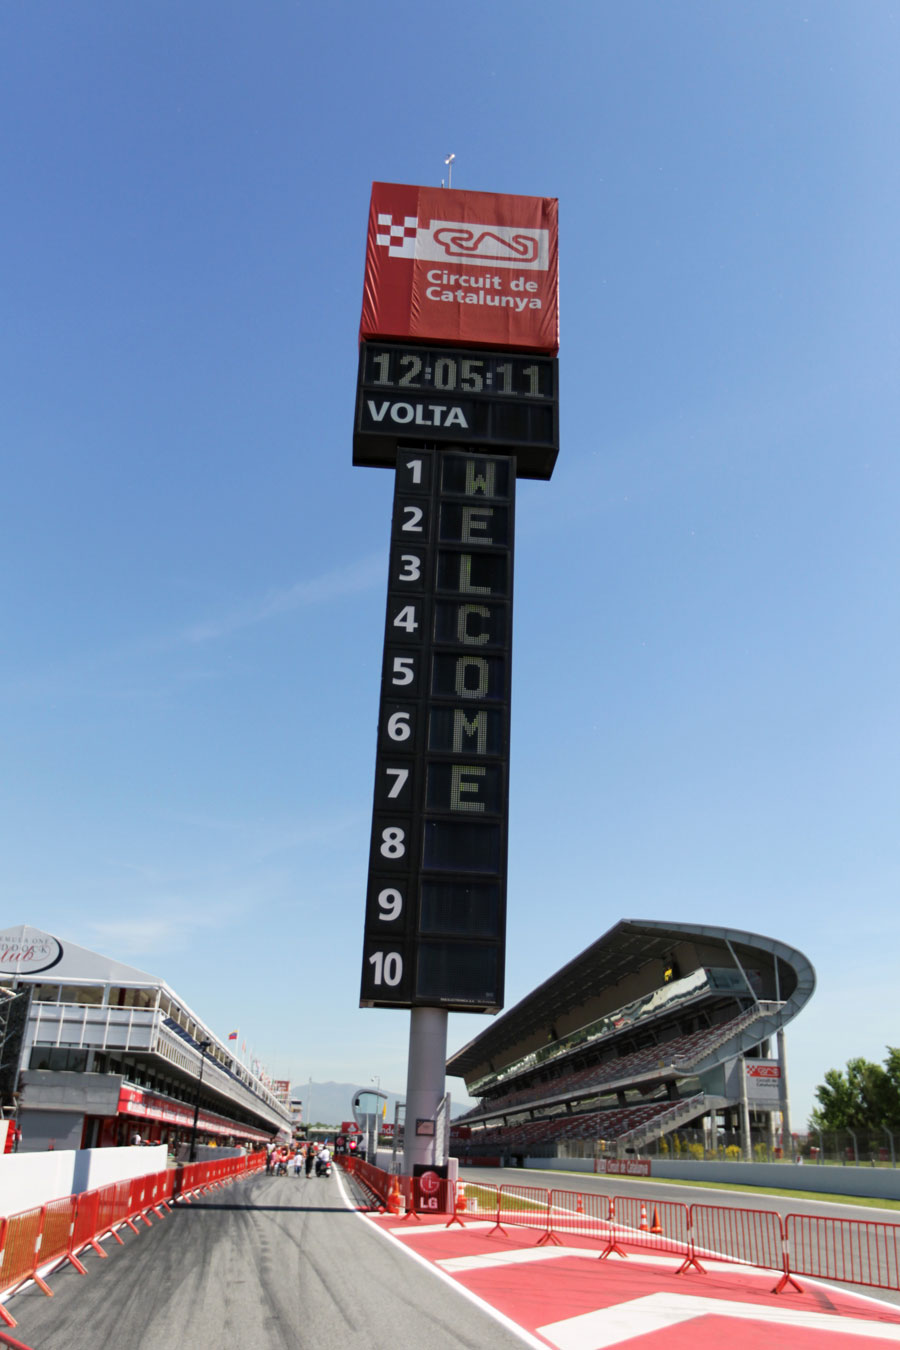 The Circuit de Catalunya leaderboard welcomes the F1 paddock